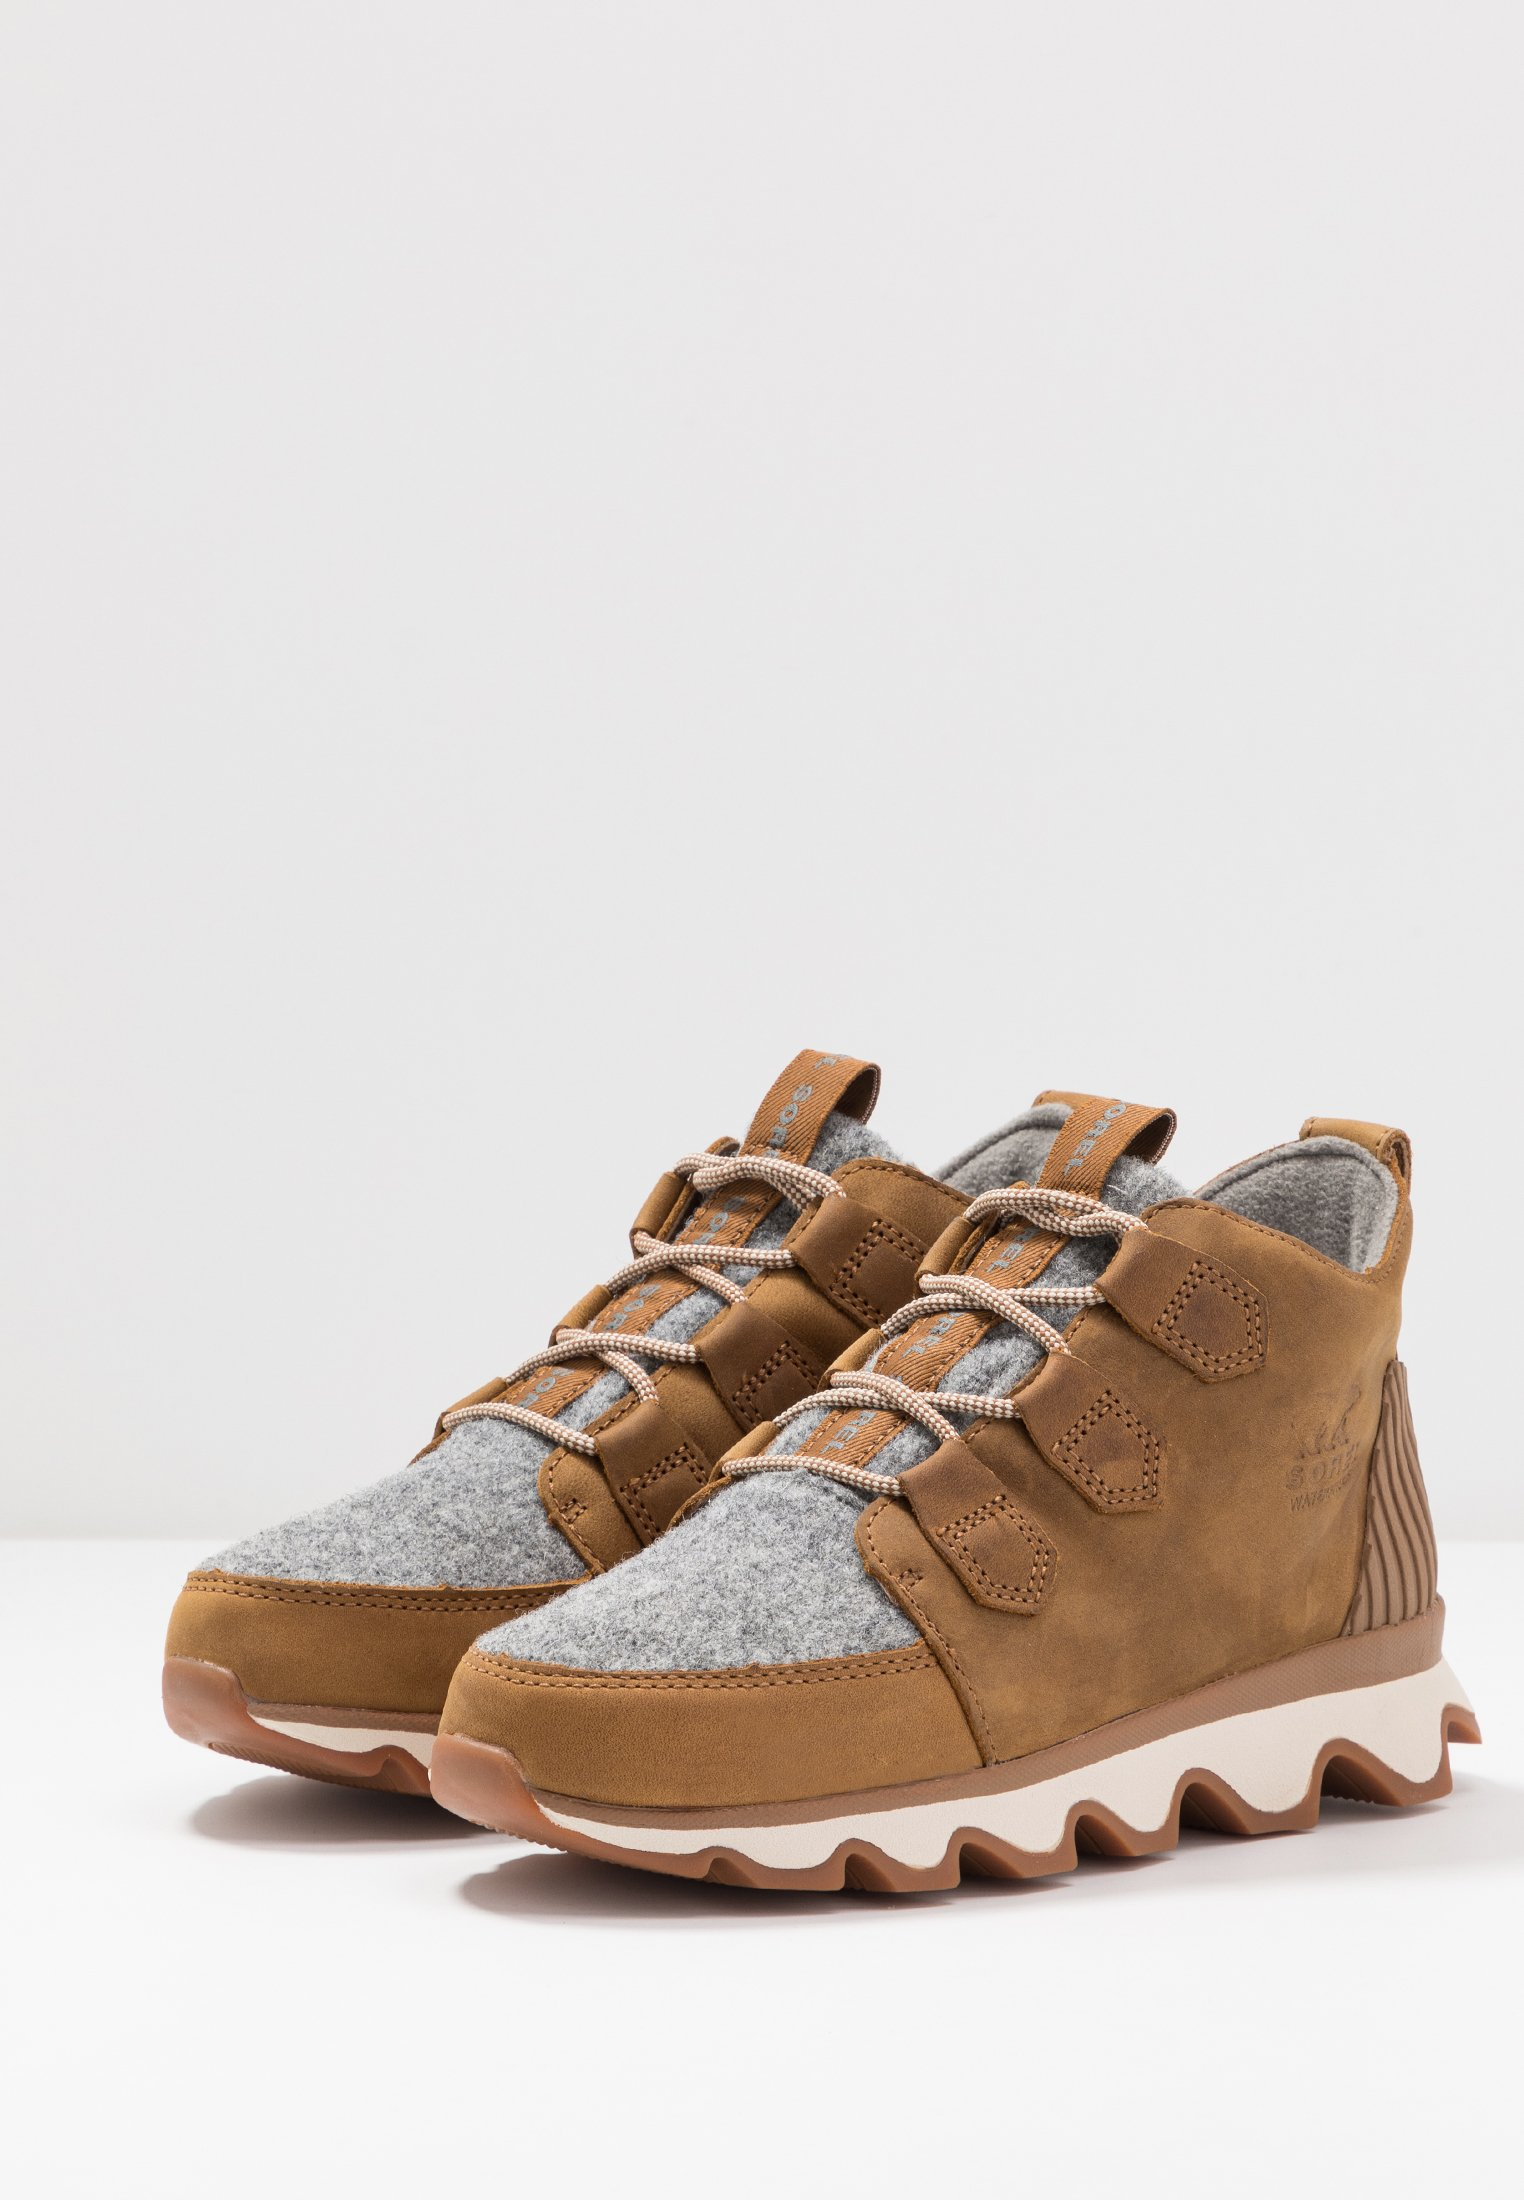 Discount Cheapest Sorel KINETIC CARIBOU - Ankle boots - camel brown | women's shoes 2020 pYMZf